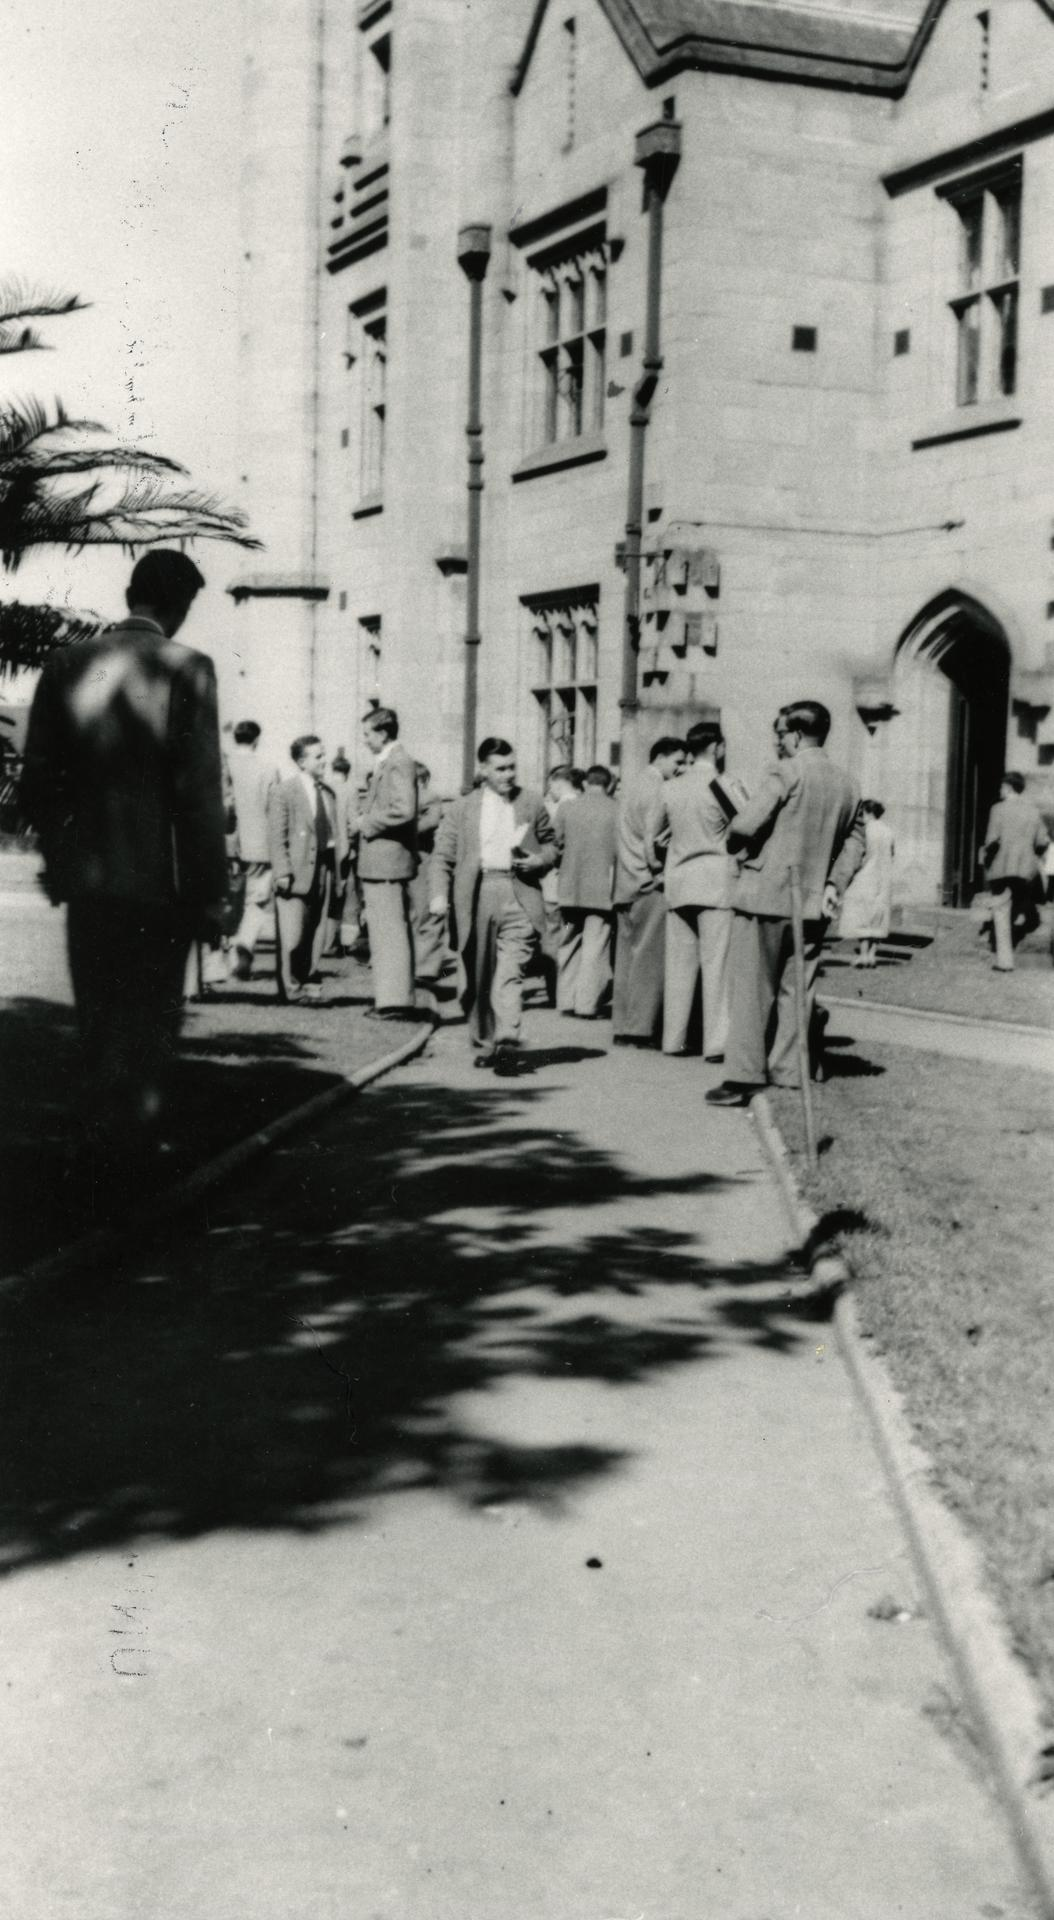 Students outside Old Arts building, 1954